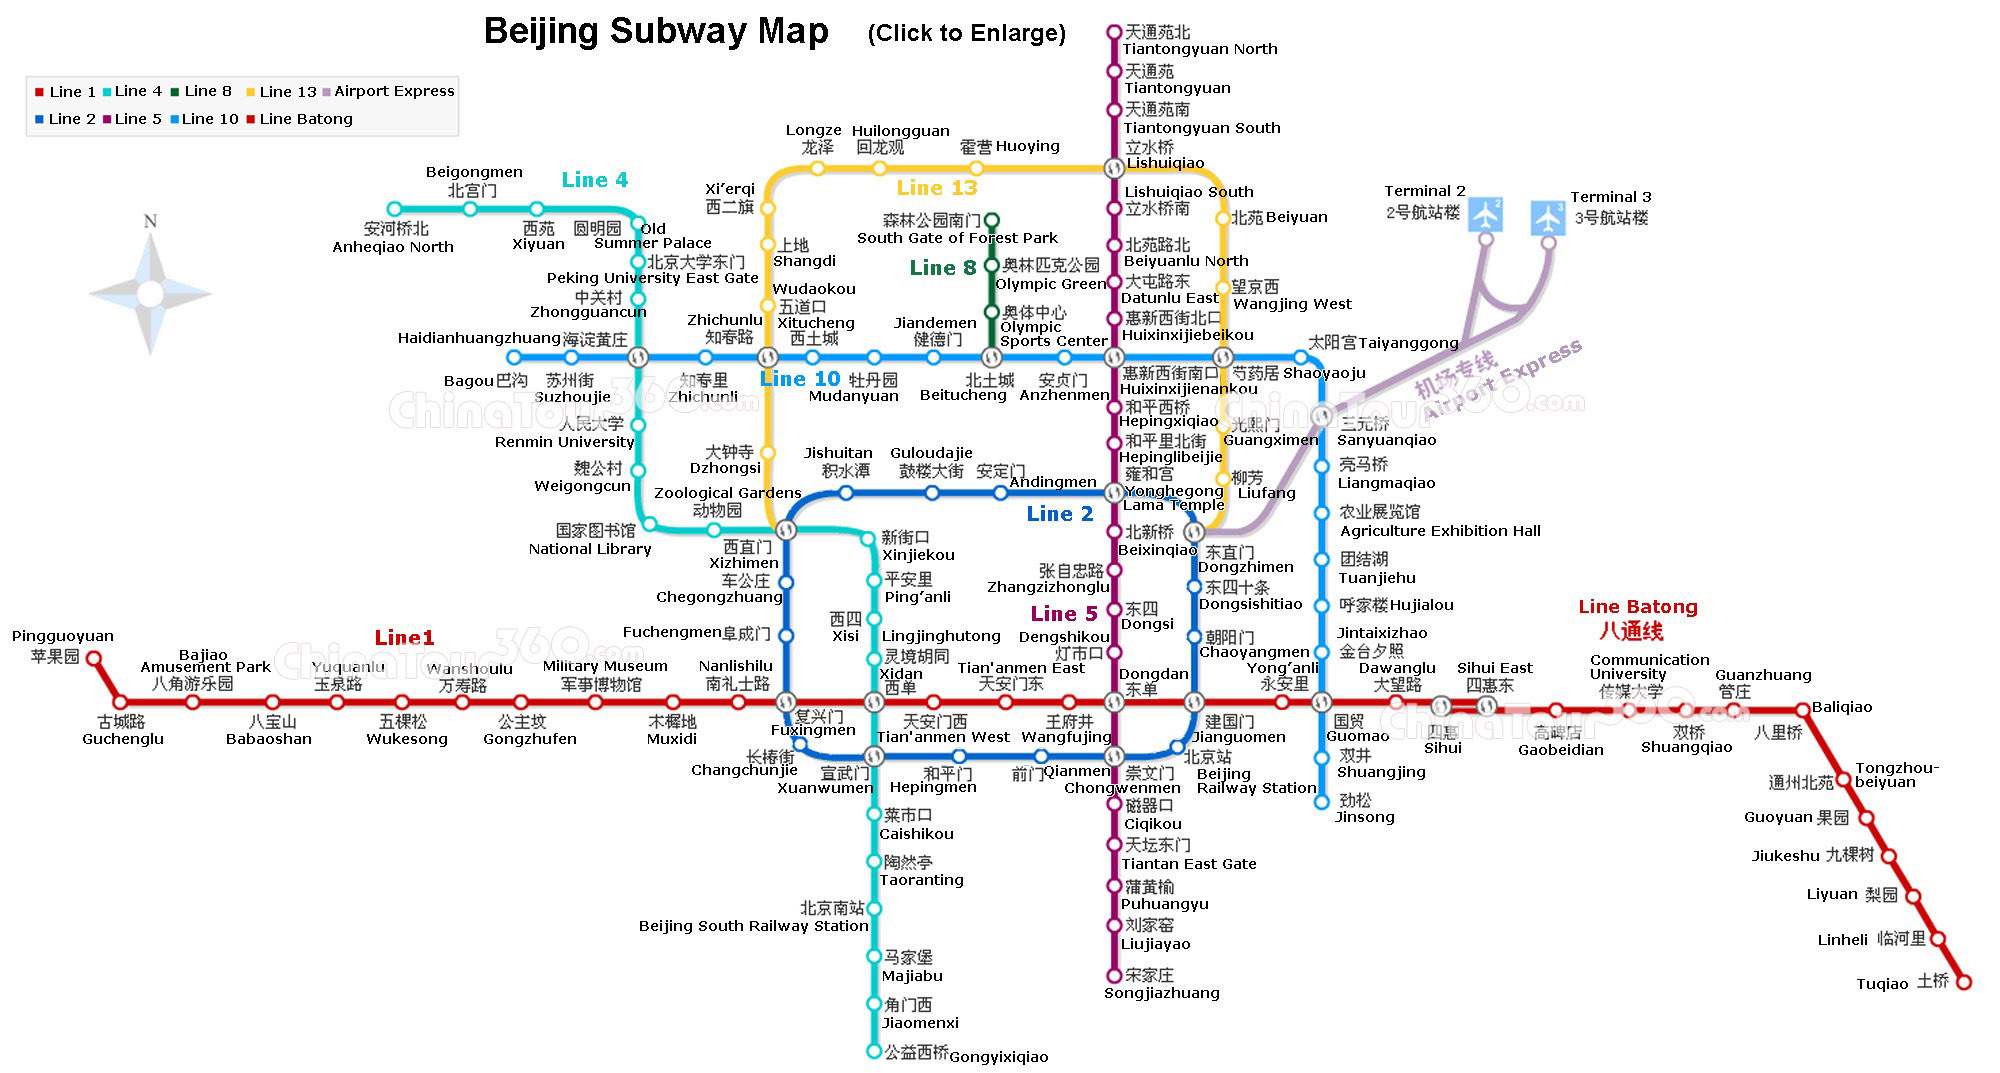 Beijing City Subway Map.Detailed Map Of Beijing City Subway Beijing City Detailed Map Of